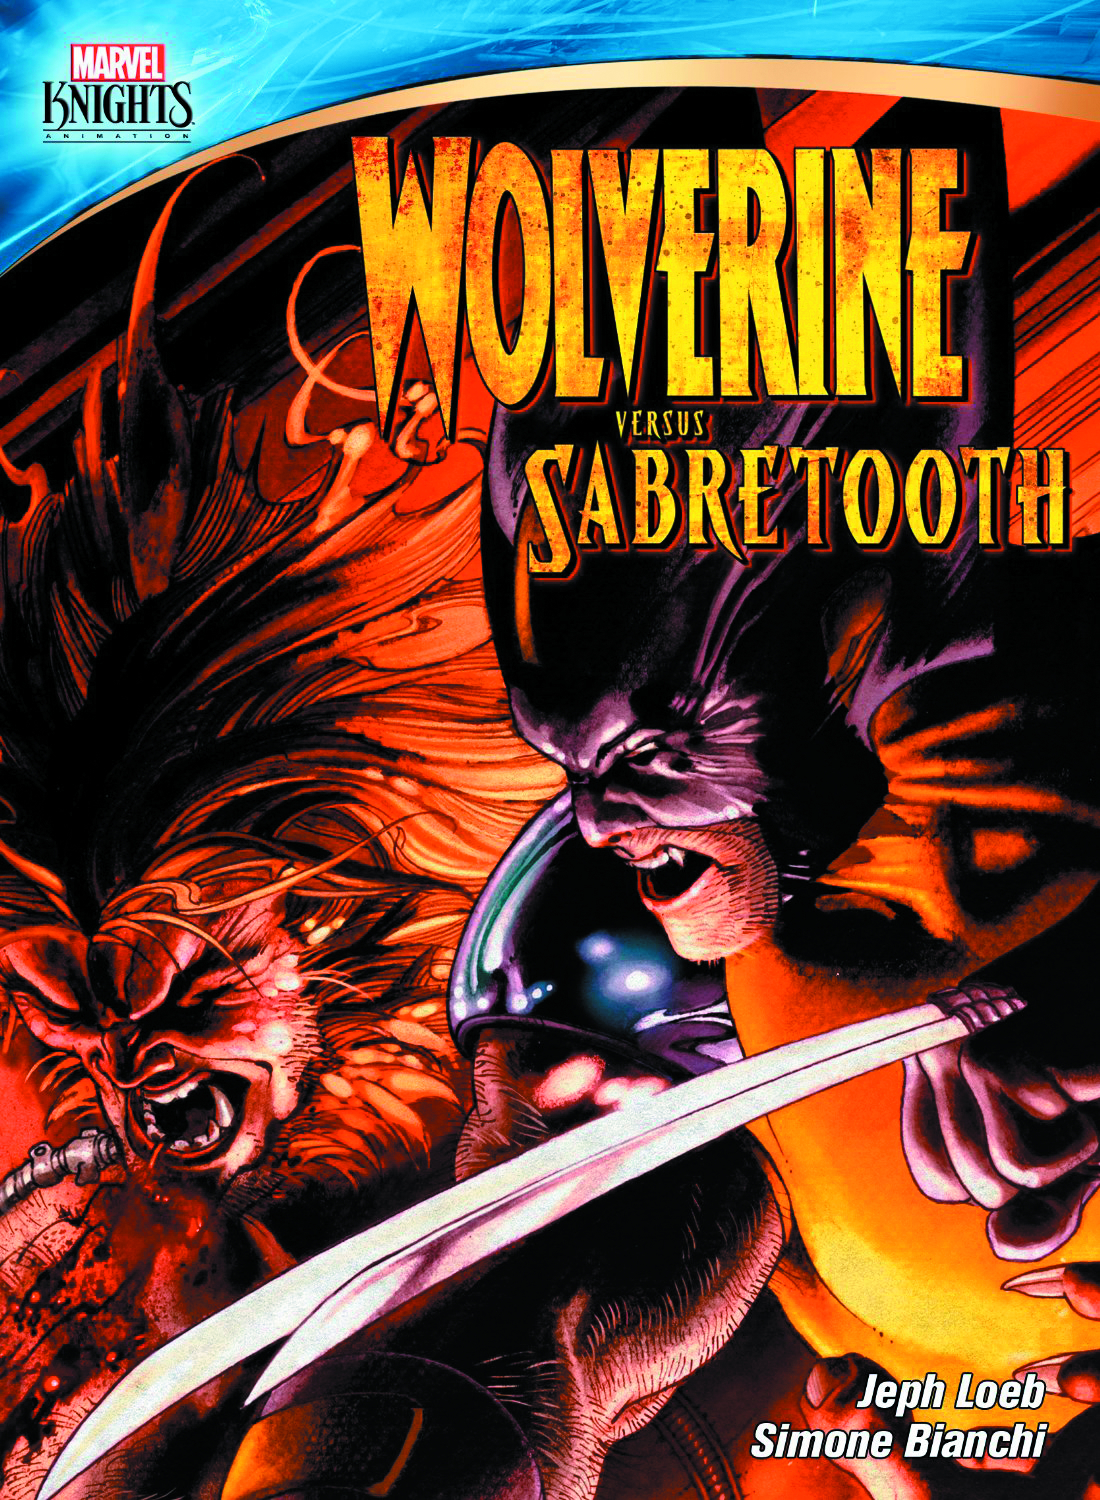 MARVEL KNIGHTS WOLVERINE VS SABRETOOTH DVD